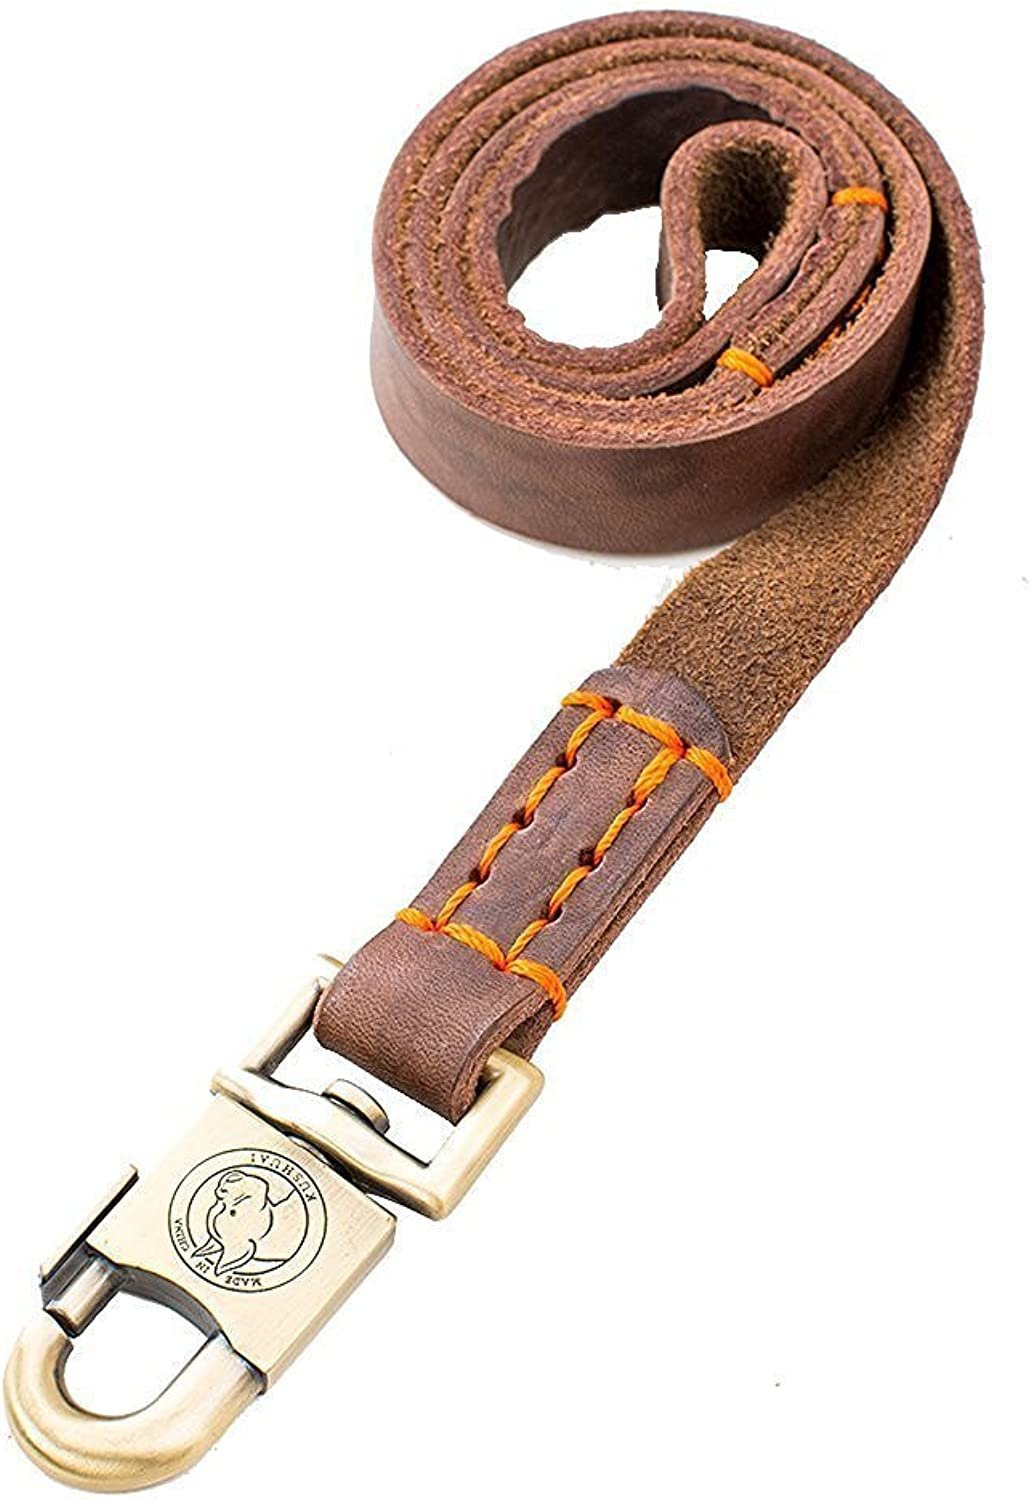 Rantow Super Strong Leather Pet Trainning Leads for Medium Dogs or Large Dogs 1 Inch Wide and 3ft, 4ft and 5ft Long Handmade Brown Leather Dog Leash (5 FT)